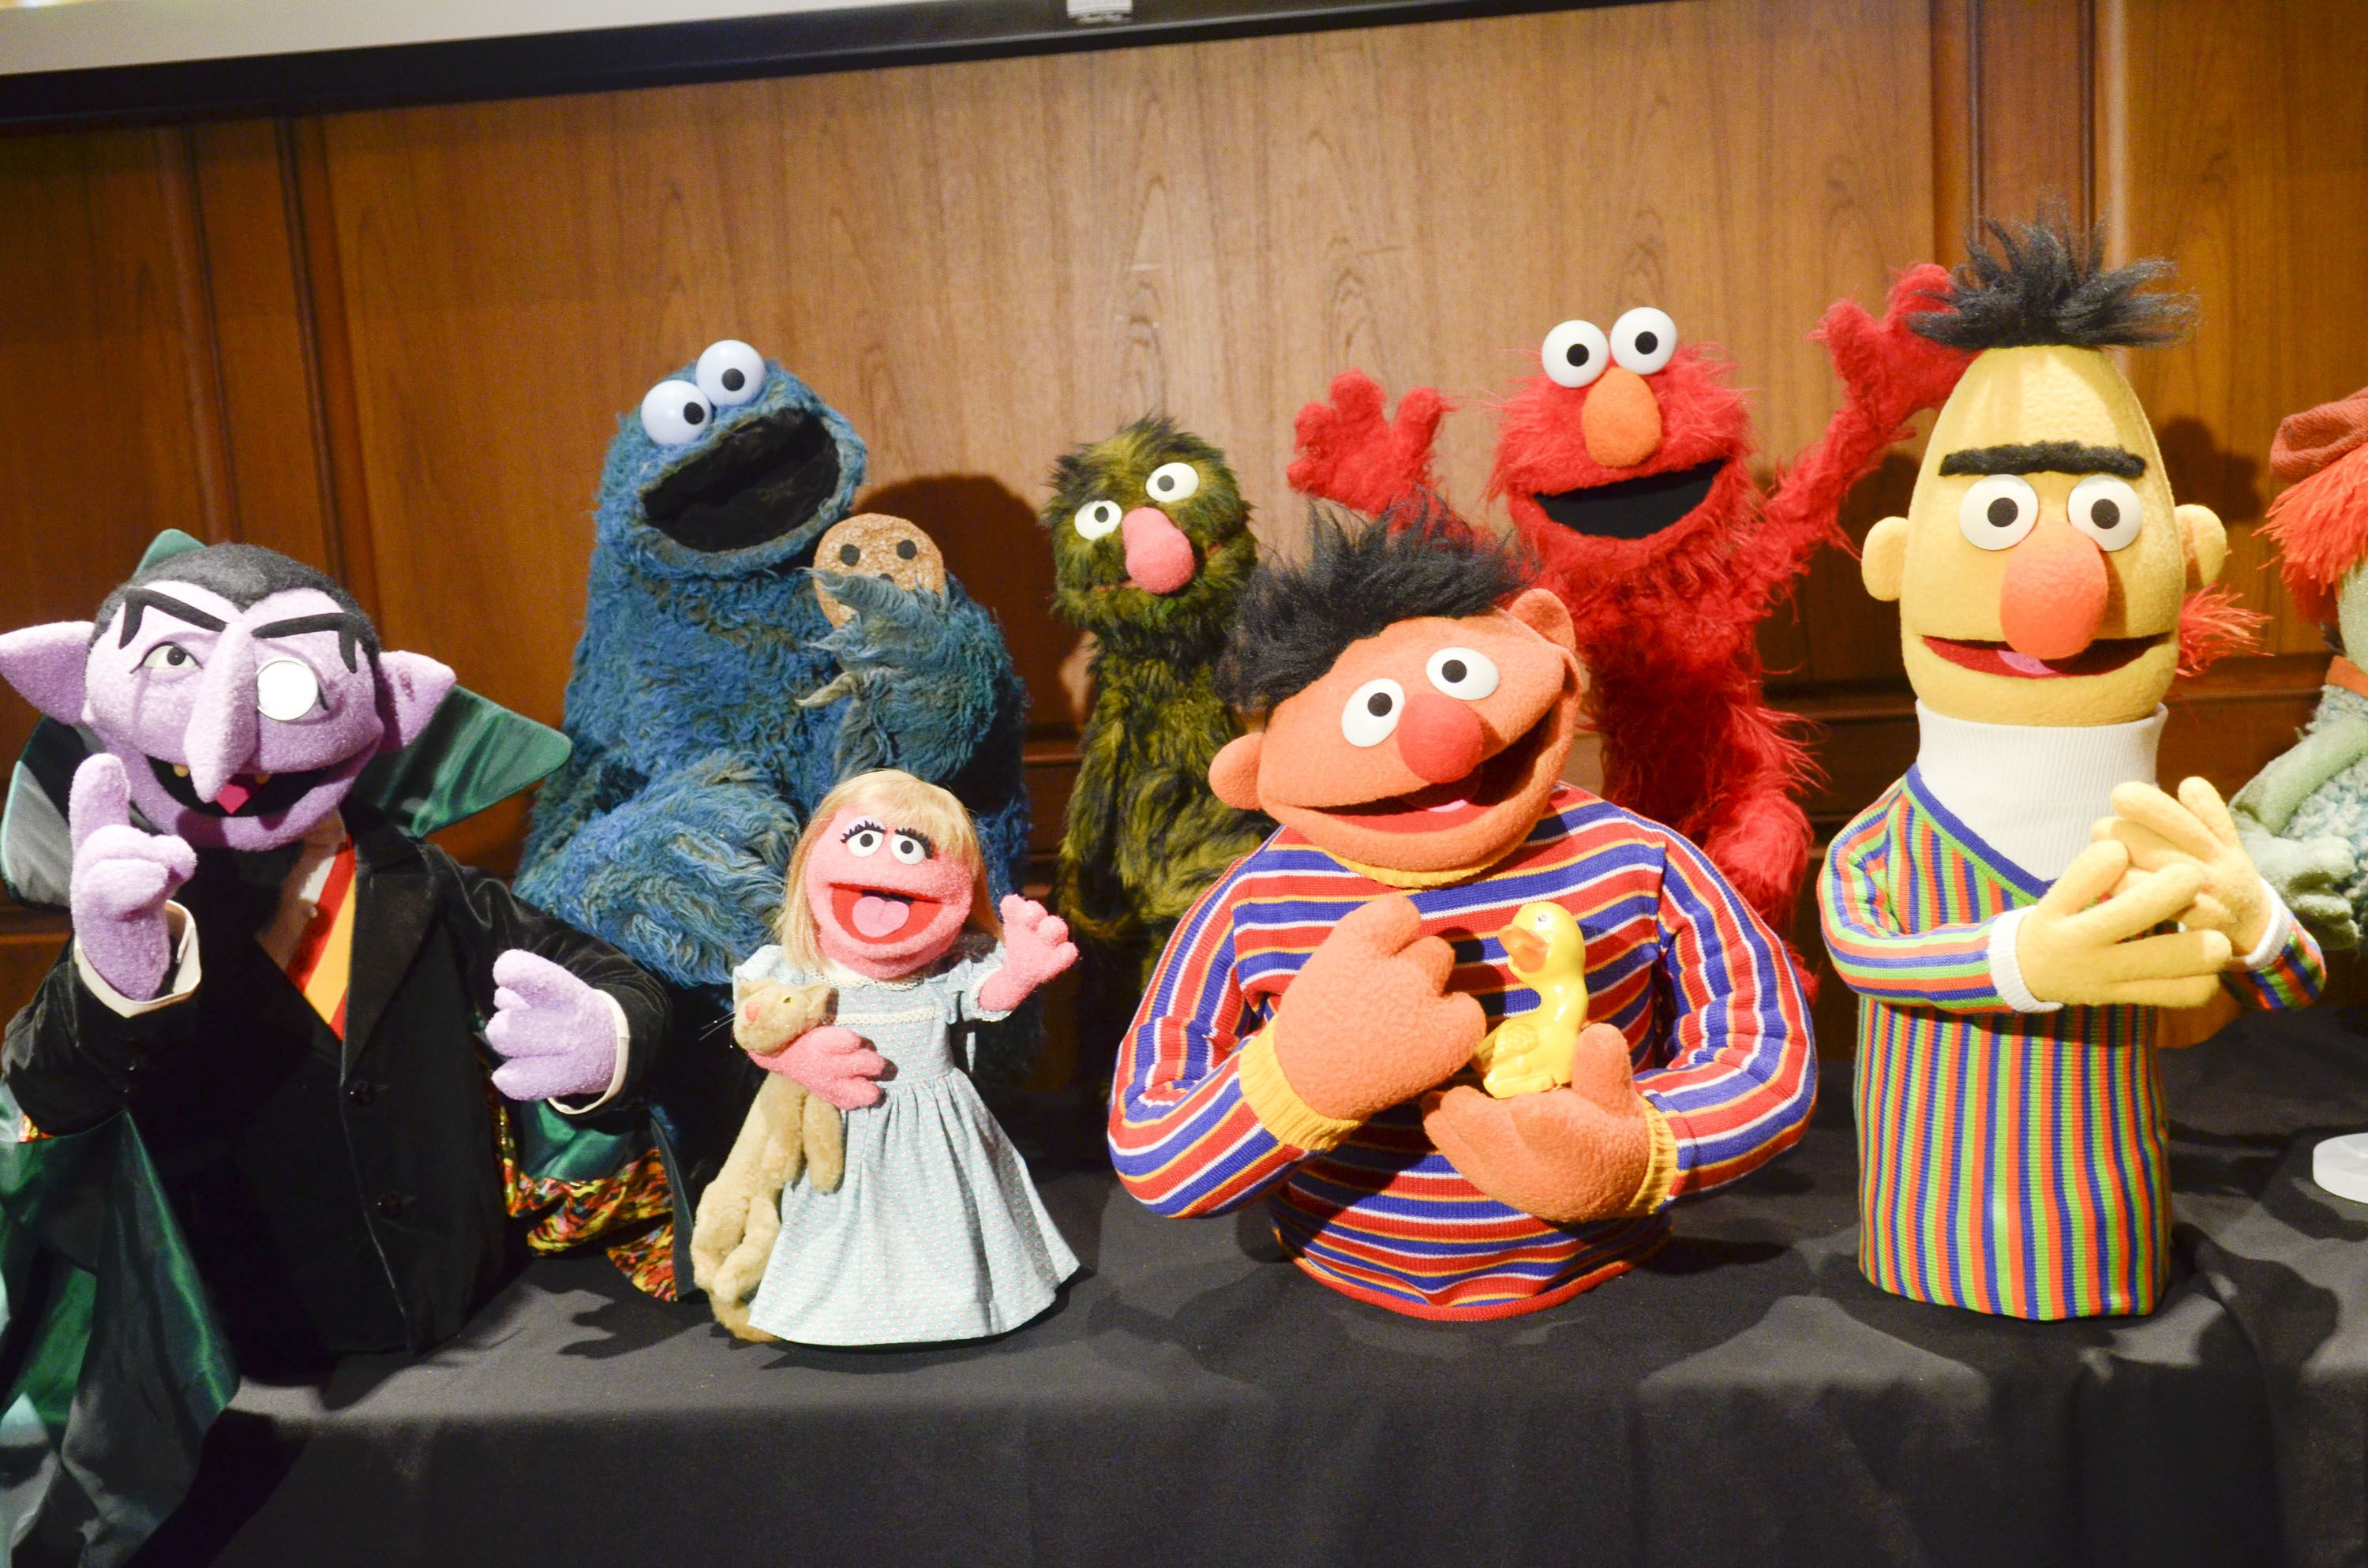 The National Museum Of American History Celebrates Jim Henson's Birthday With Puppet Donation